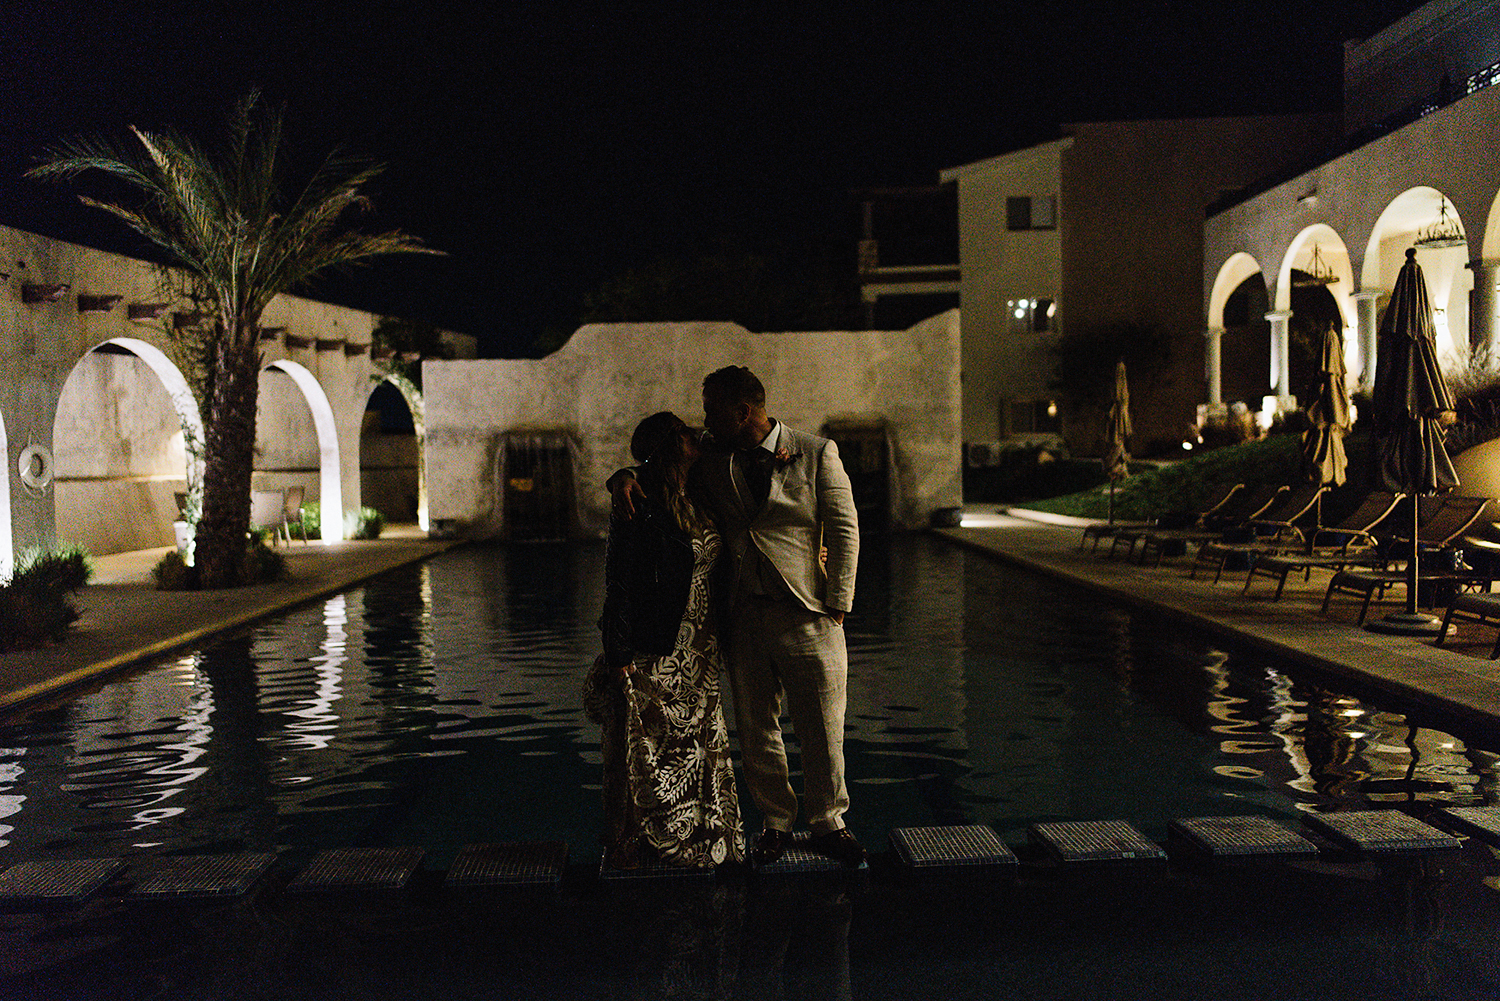 cabo-san-lucas-ventanas-private-residence-alternative-toronto-wedding-photographer-documentary-photojournalistic-reception-party-dancing-photos-candid-documentary-moments-trendy-cool-hipster-night-portrait-on-the-water.jpg